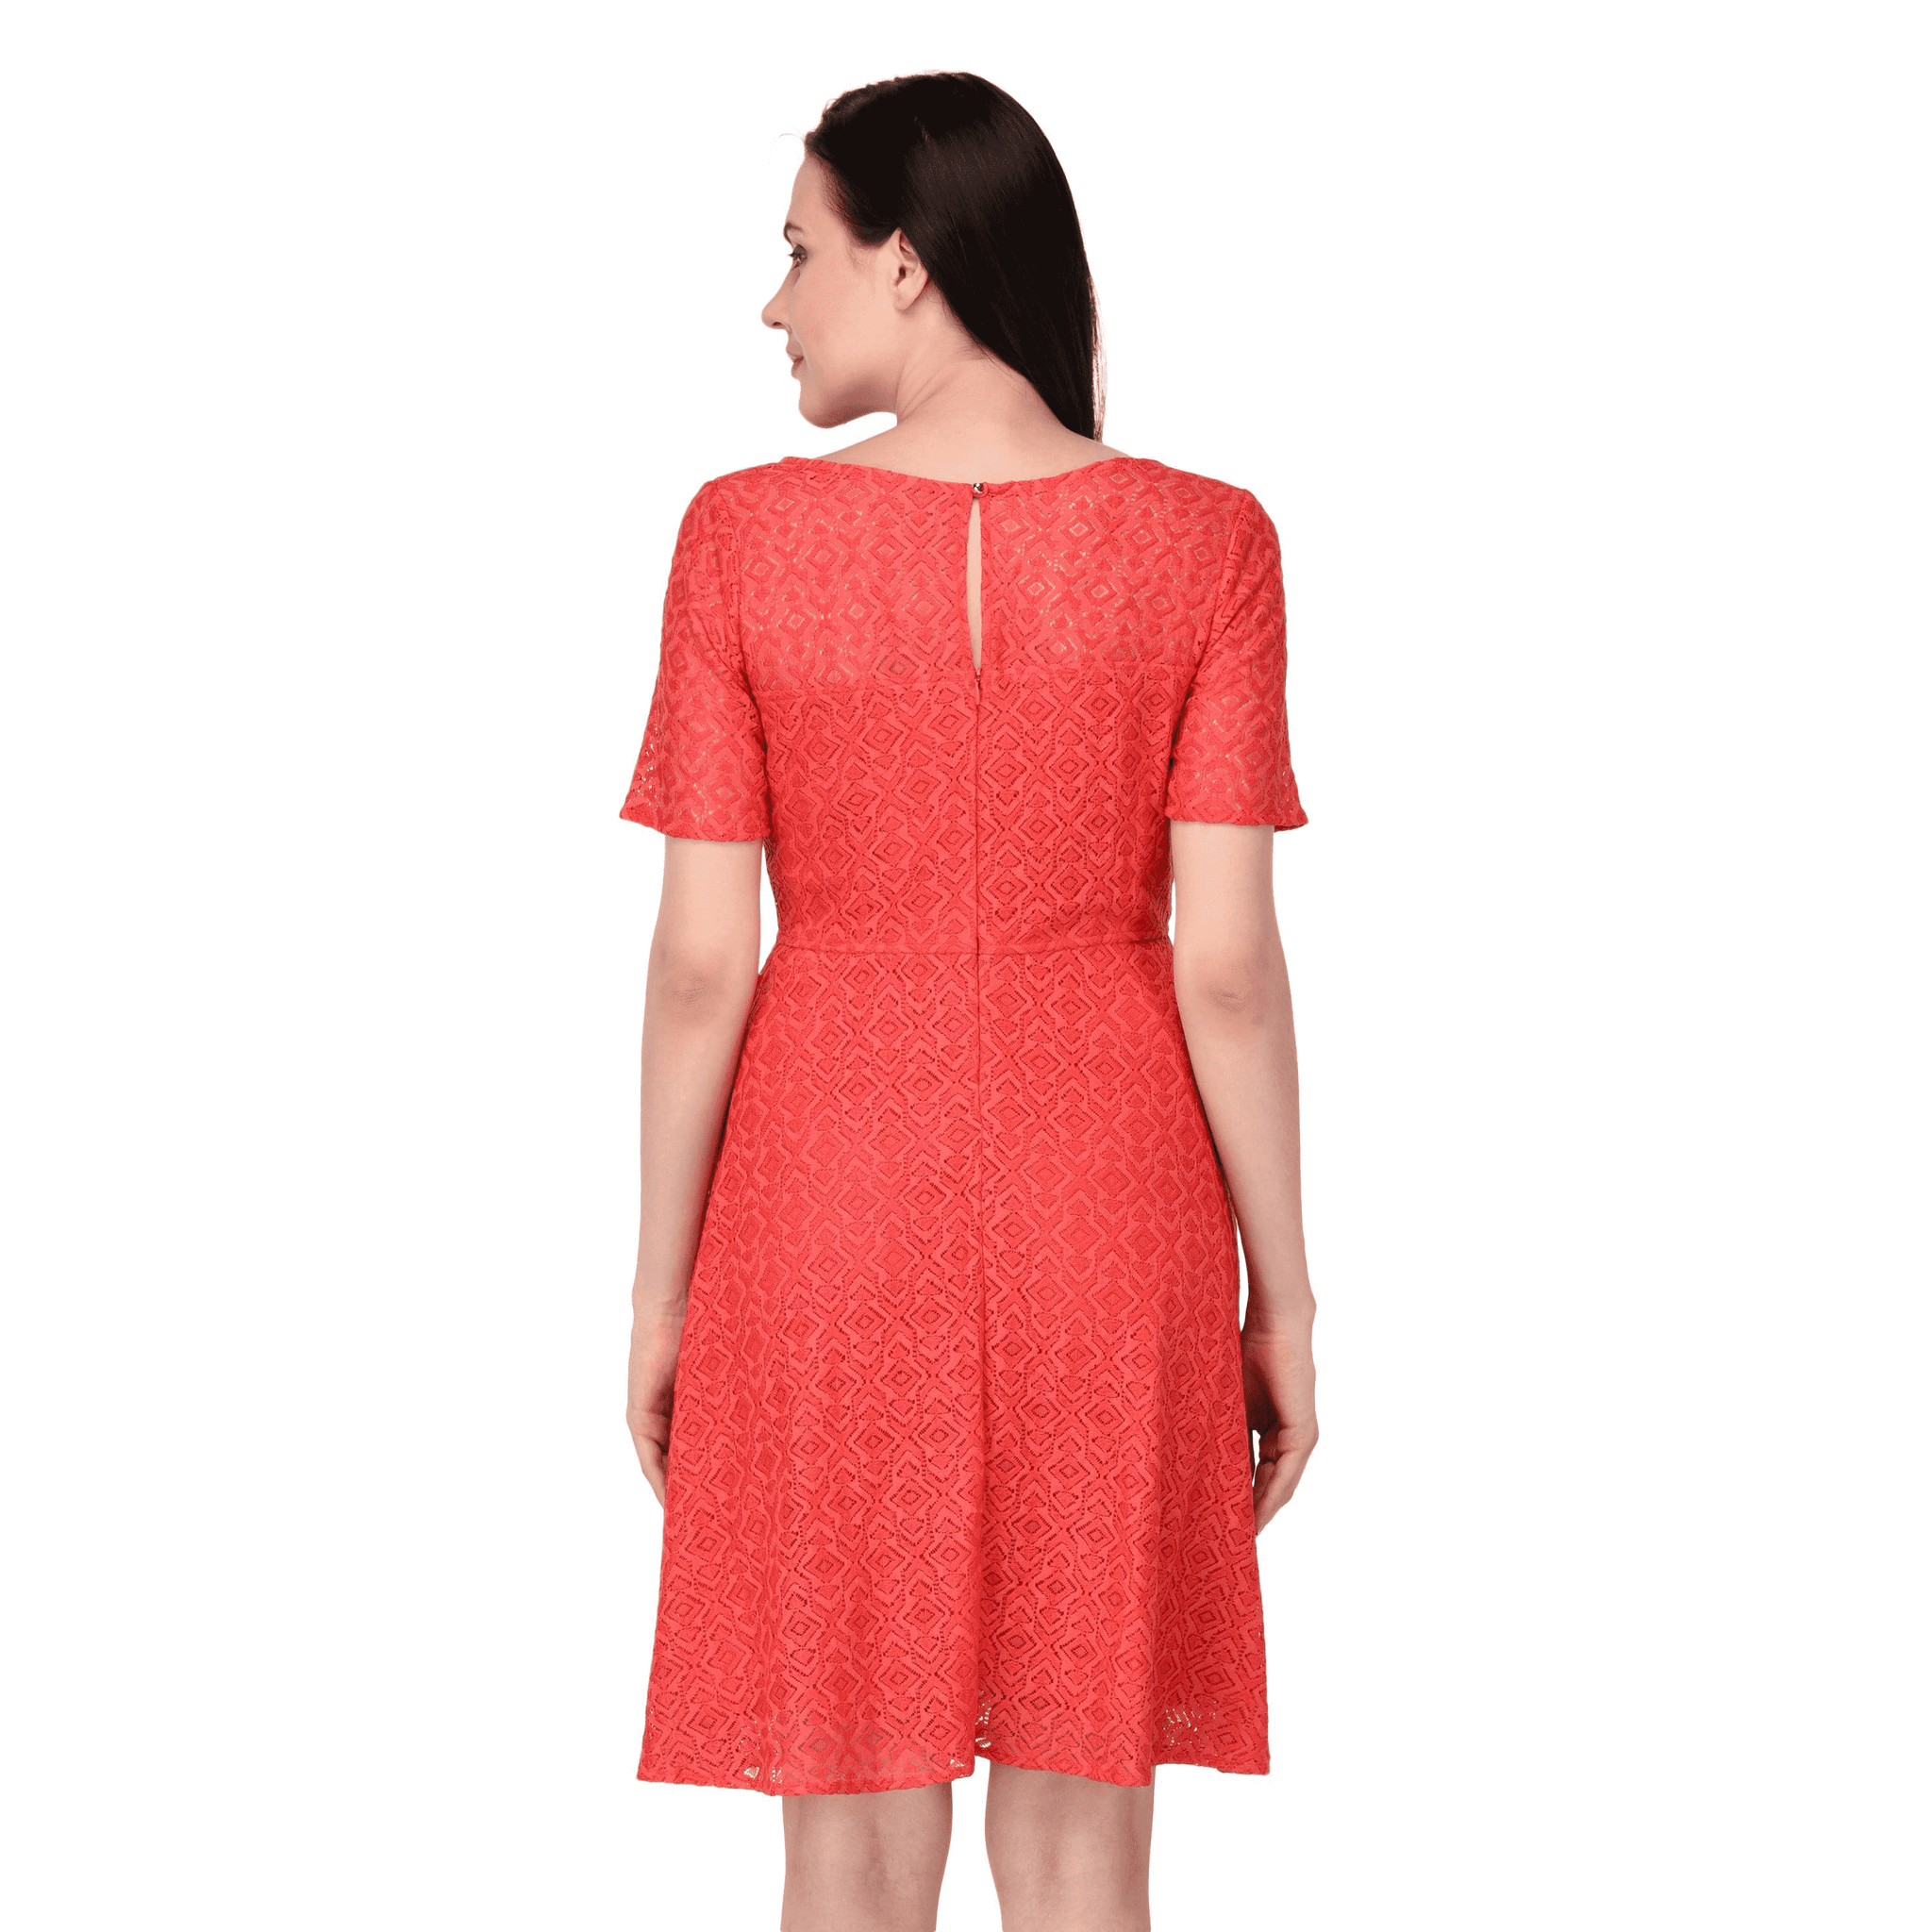 Flare & Swing Dress Red - NIXX Clothing